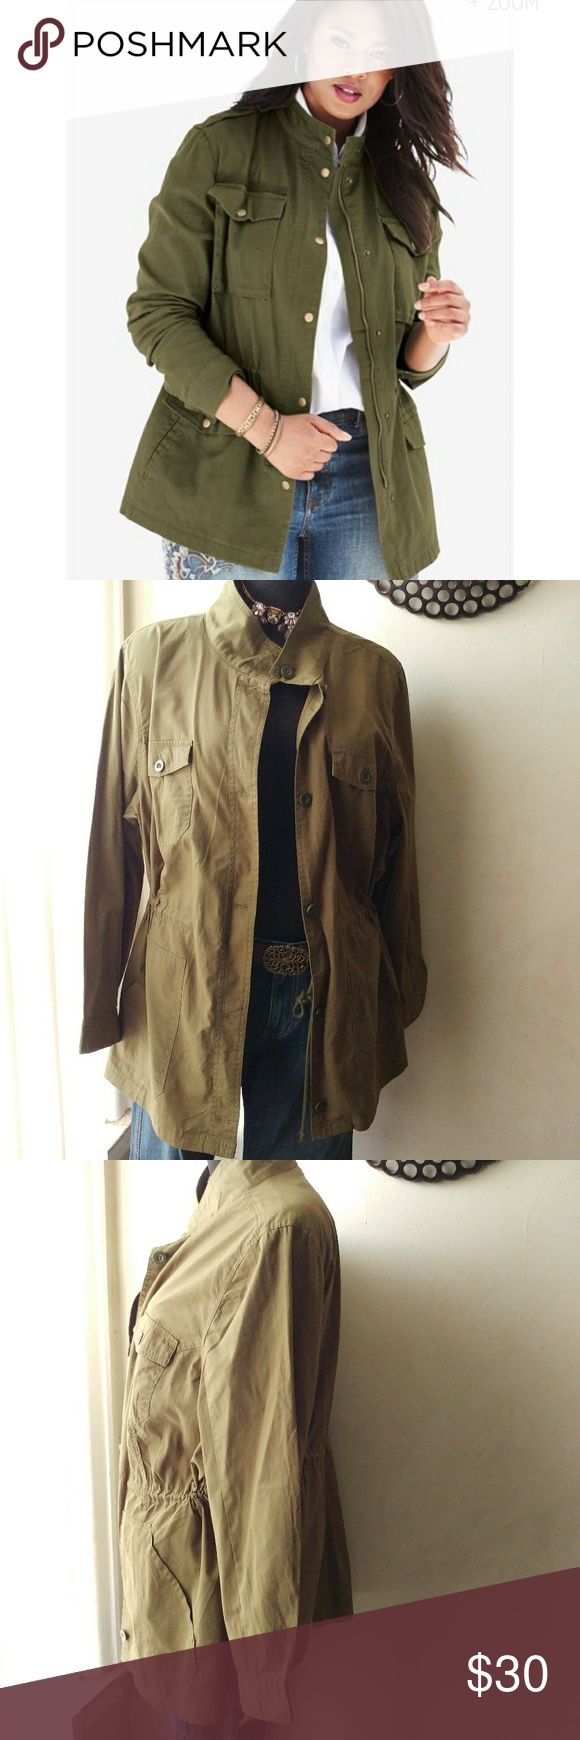 Nwt Super Cute Utility Jacket plus Size New never worn. Great lightweight jacket perfect for layering. Stay on trend with this piece. 27 inches pit to pit 30.5 inches in length.Button down closure with adjustable drawstring waist.; If you have any questions please feel free to ask Woman Within Jackets & Coats Utility Jackets